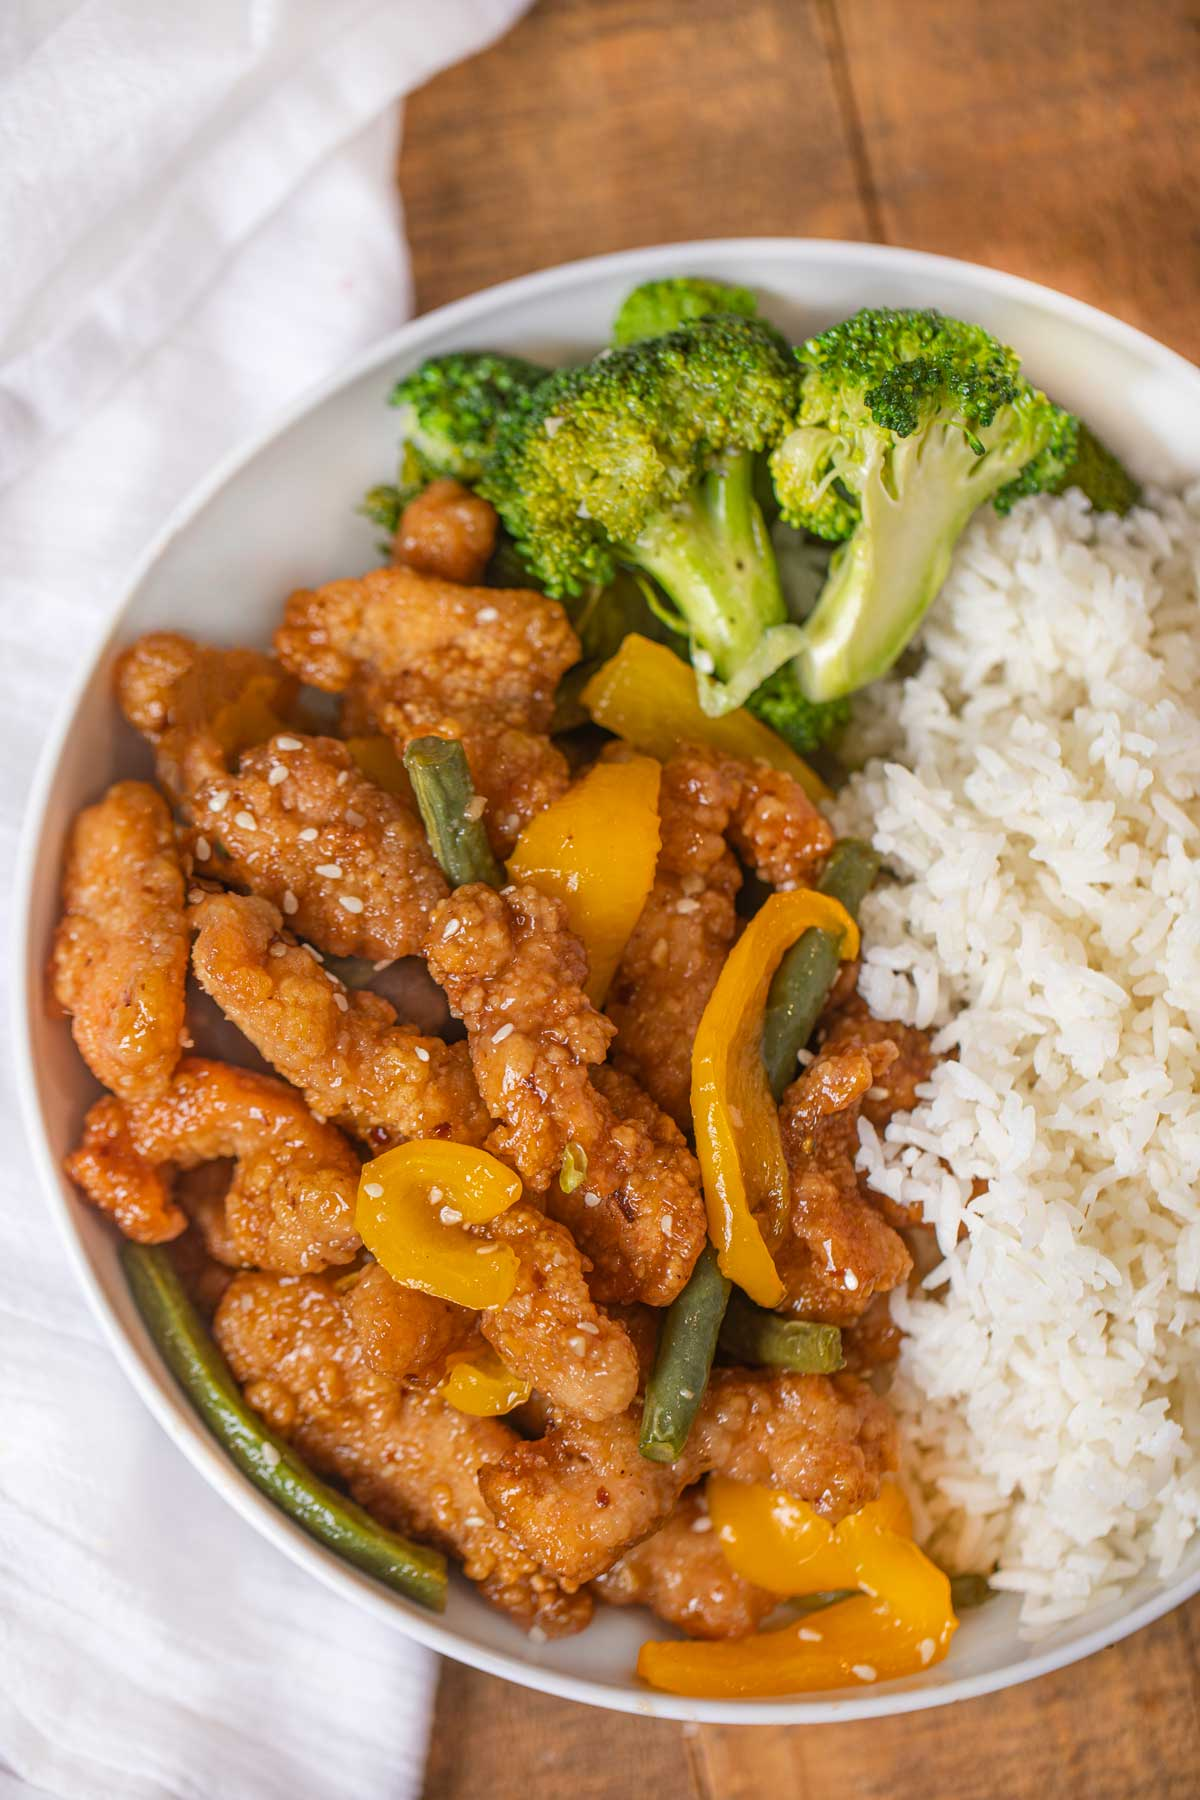 Honey Sesame Chicken Breast from Panda Express with steamed rice and broccoli in white bowl